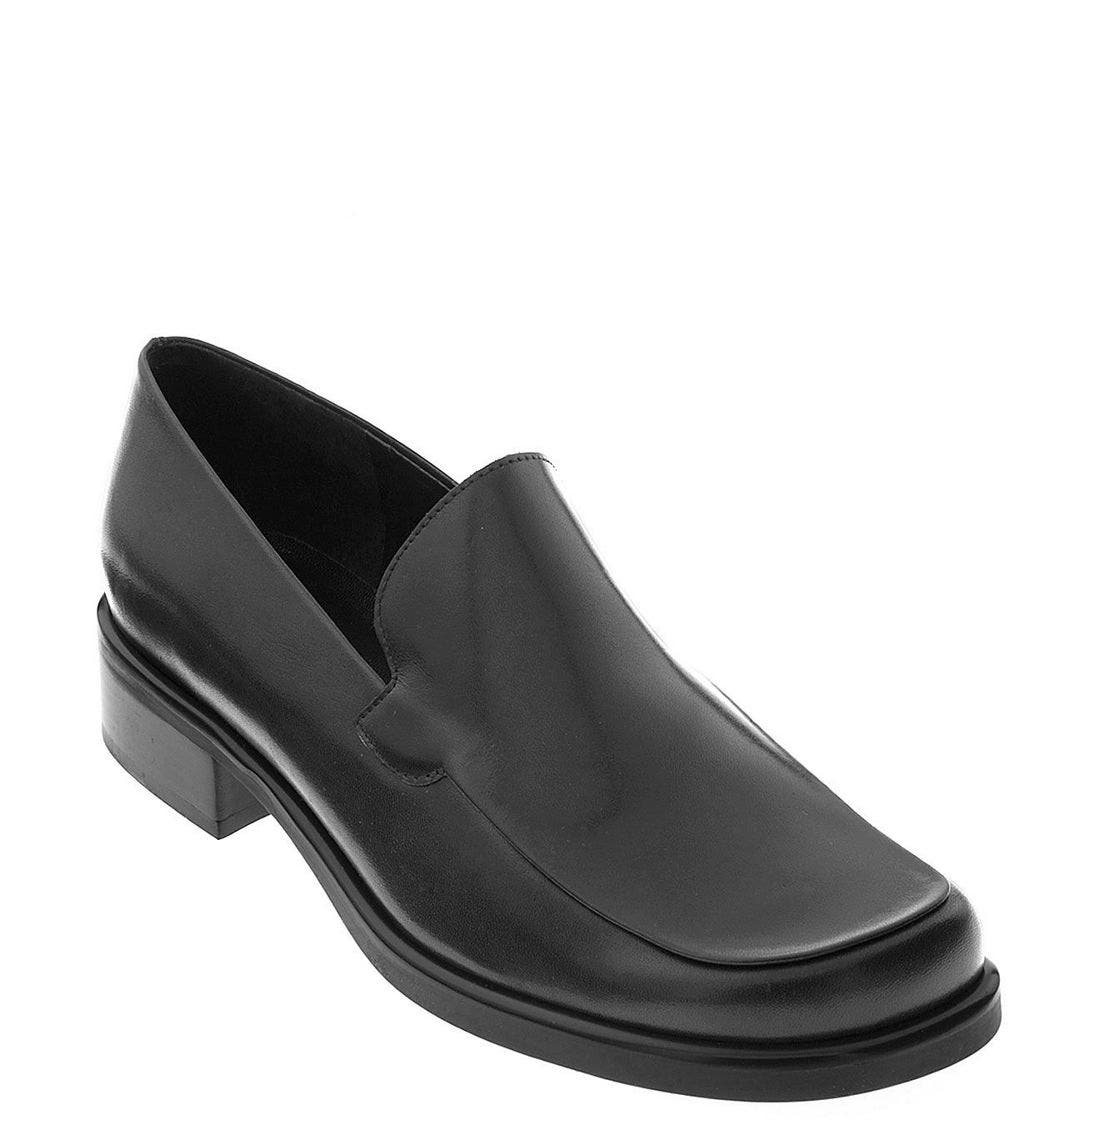 Alternate Image 1 Selected - Franco Sarto 'Bocca' Loafer